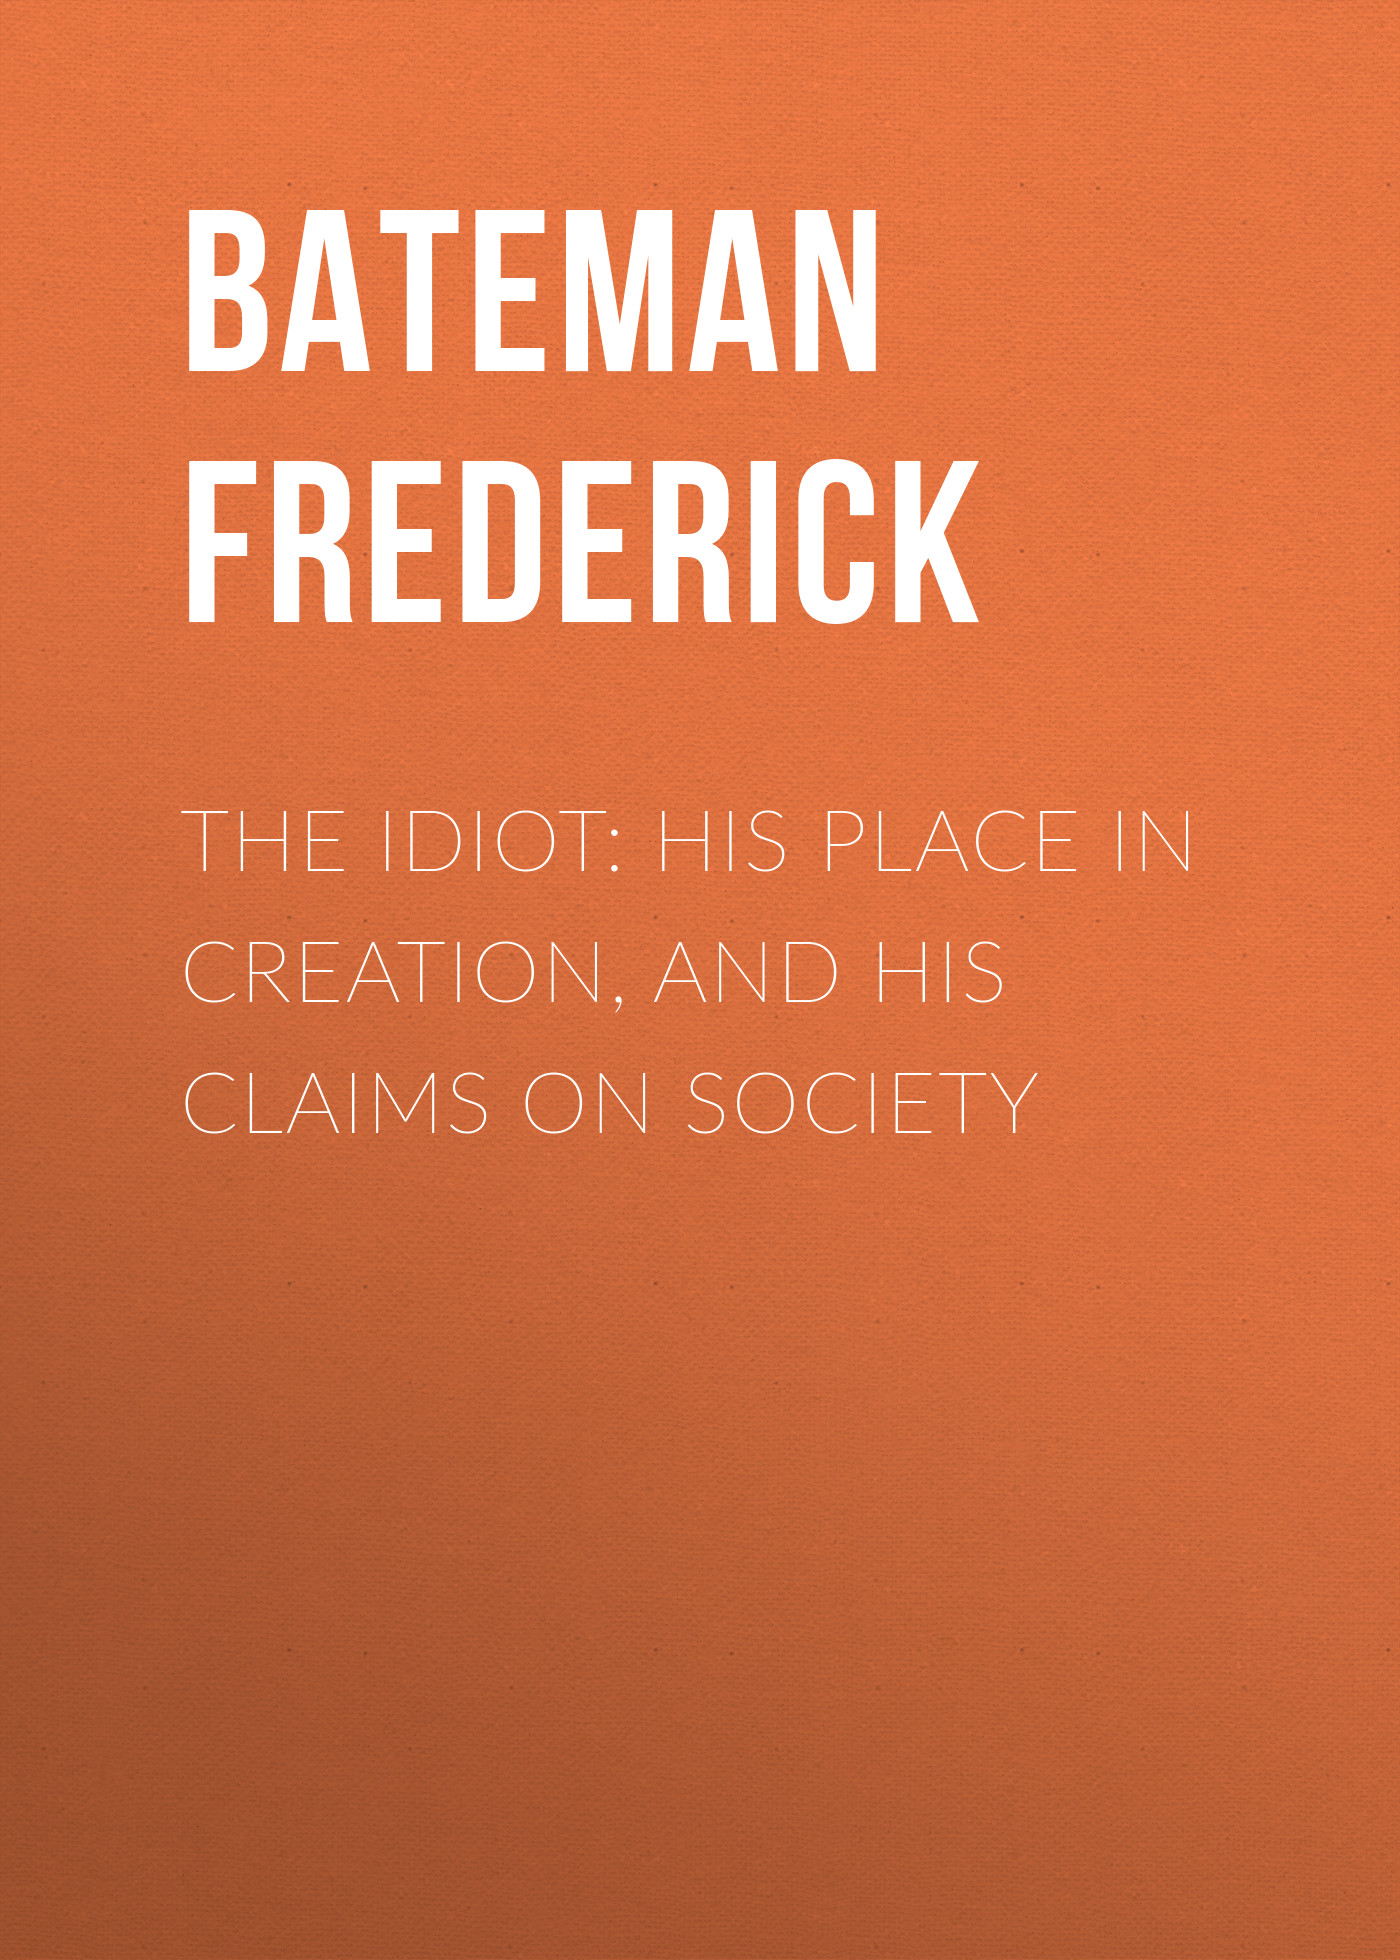 Bateman Frederick The Idiot: His Place in Creation, and His Claims on Society american society of transplantation primer on transplantation isbn 9781444391756